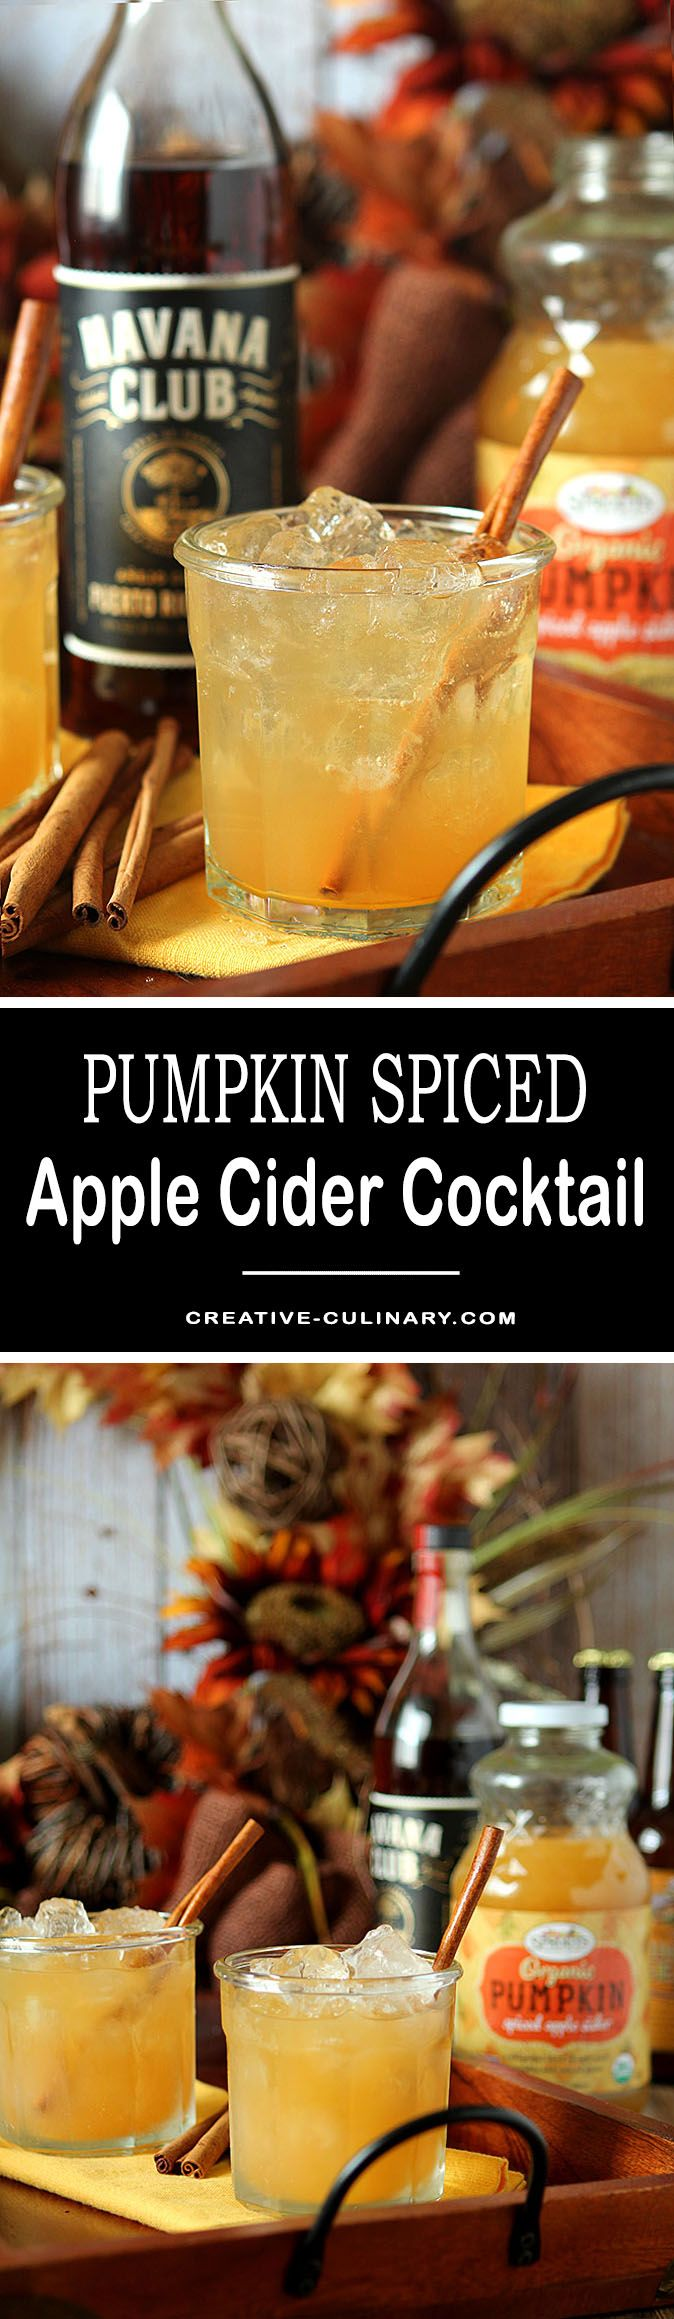 A nice change for a fall cocktail with rum in lieu of bourbon. This Pumpkin Spiced Apple Cider Cocktail is touched with cinnamon and lemon too! via @creativculinary